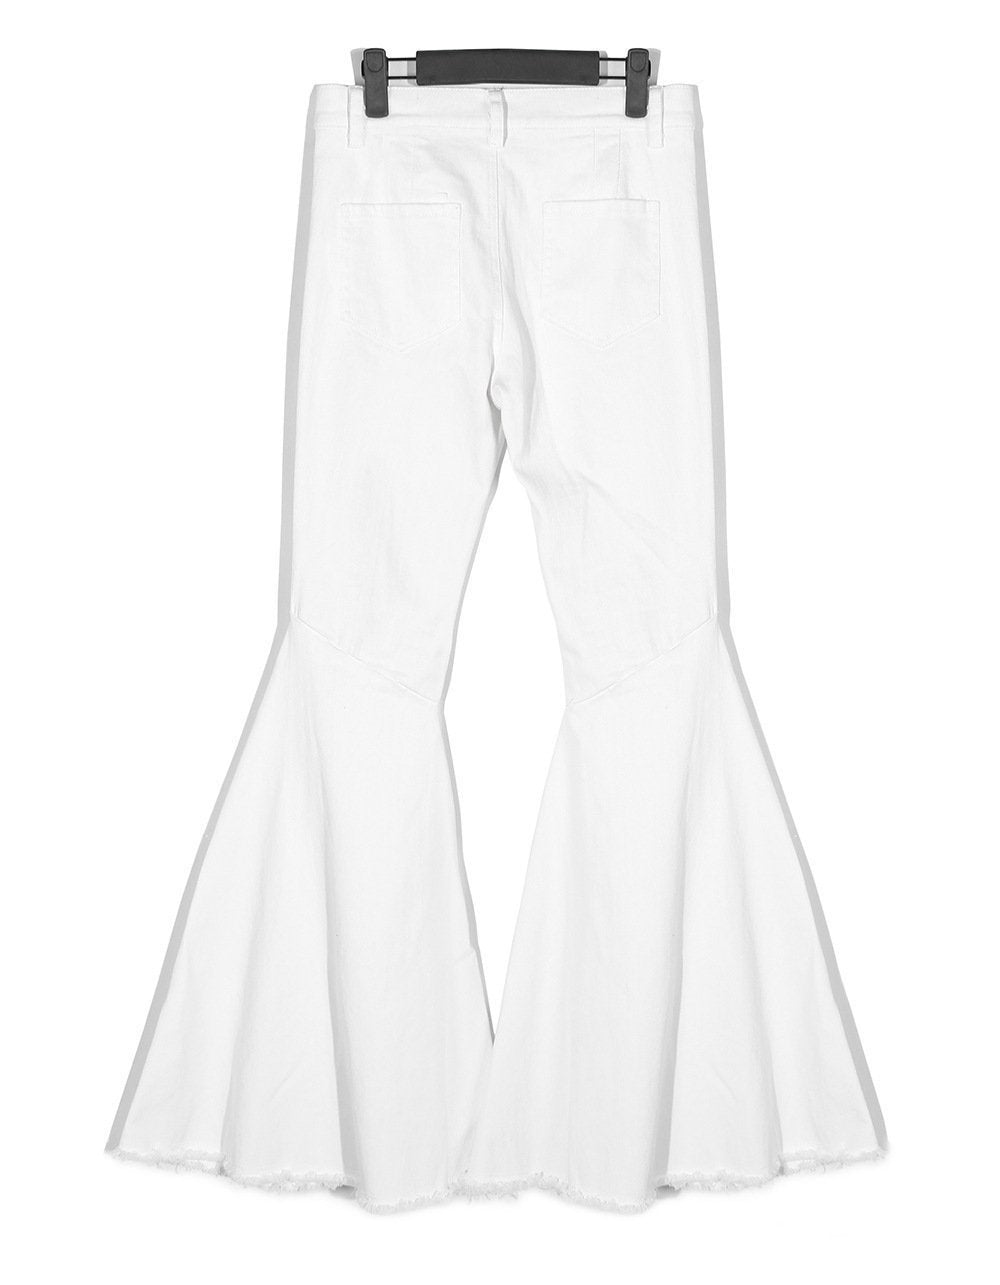 Usatani High Waisted Pocket Flare Pants - White